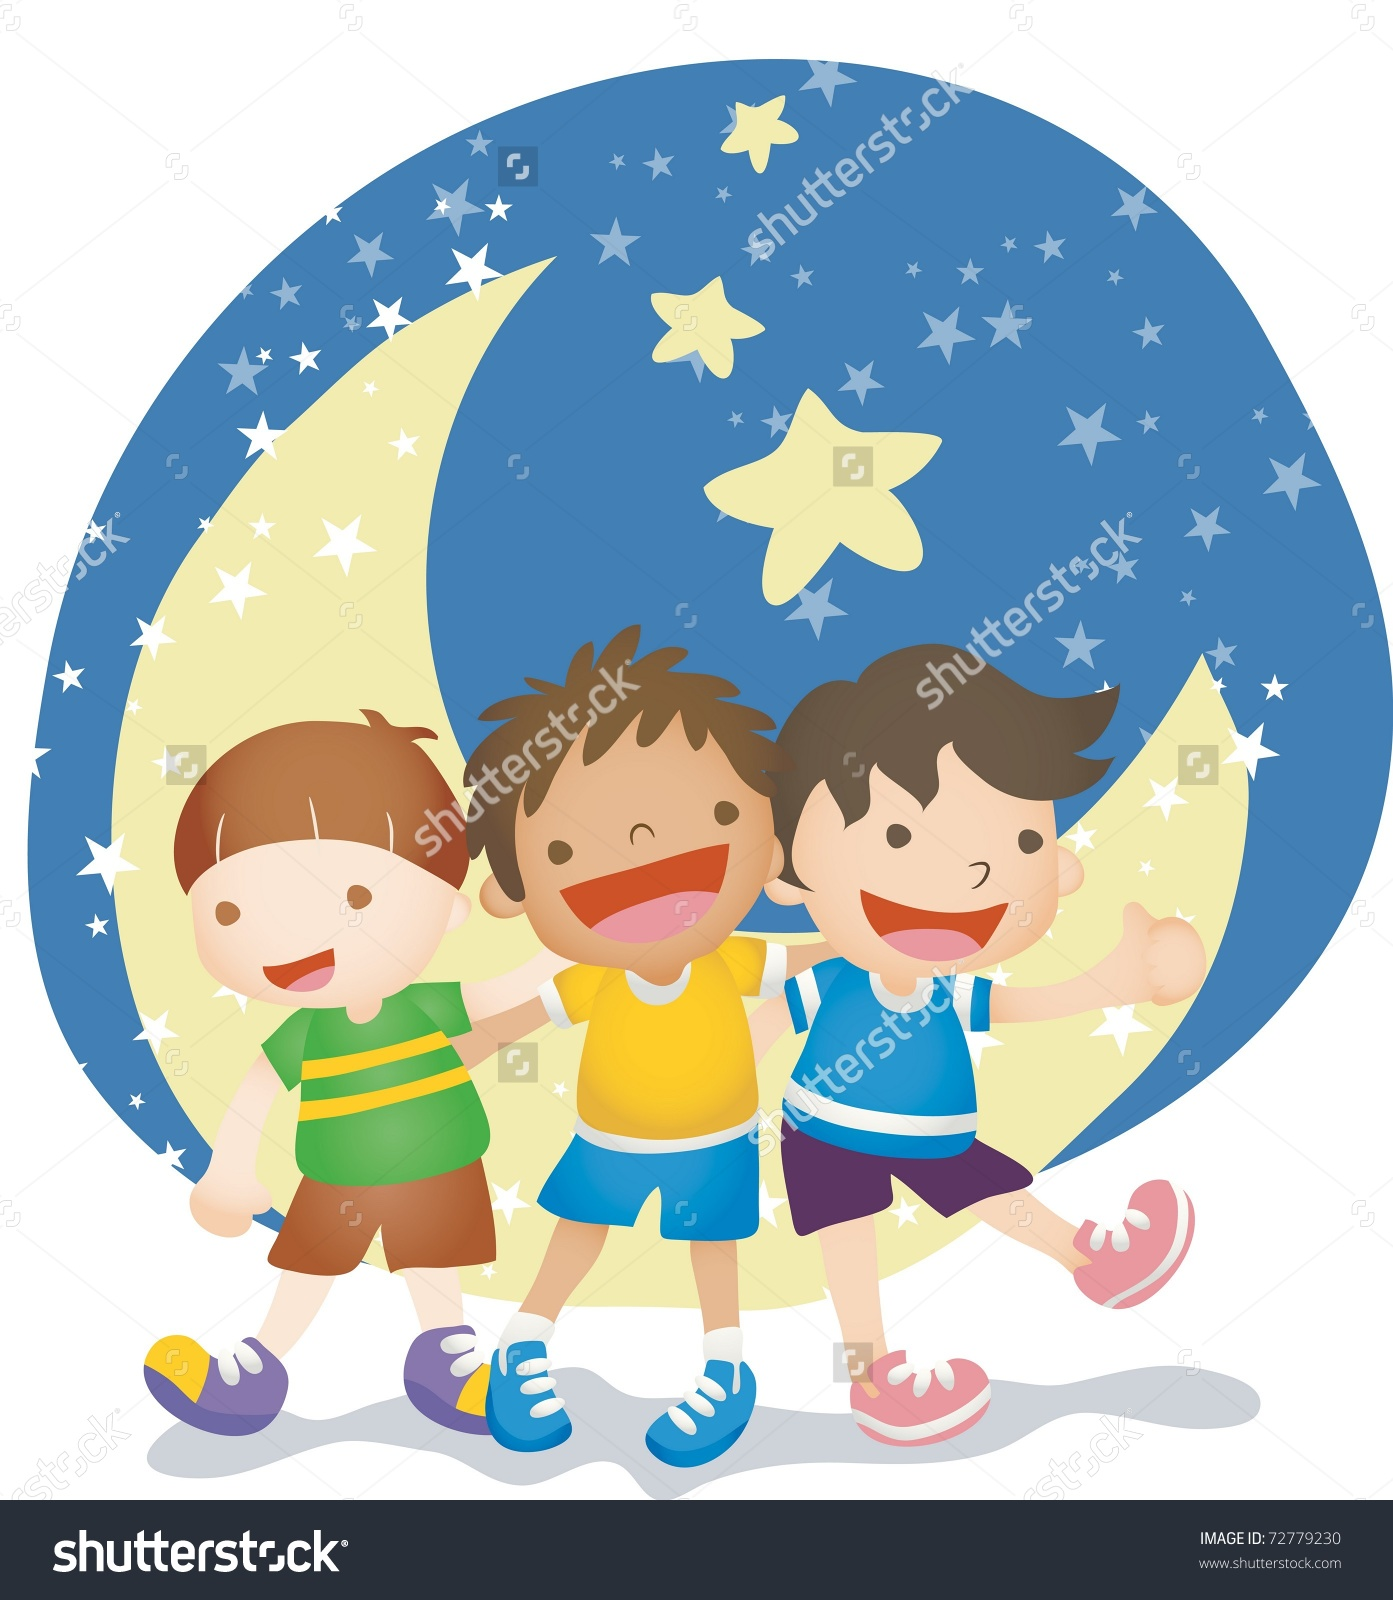 Happy anniversary cute clipart png free library Happy Anniversary Global Friends Playing Moonlight Stock Vector ... png free library